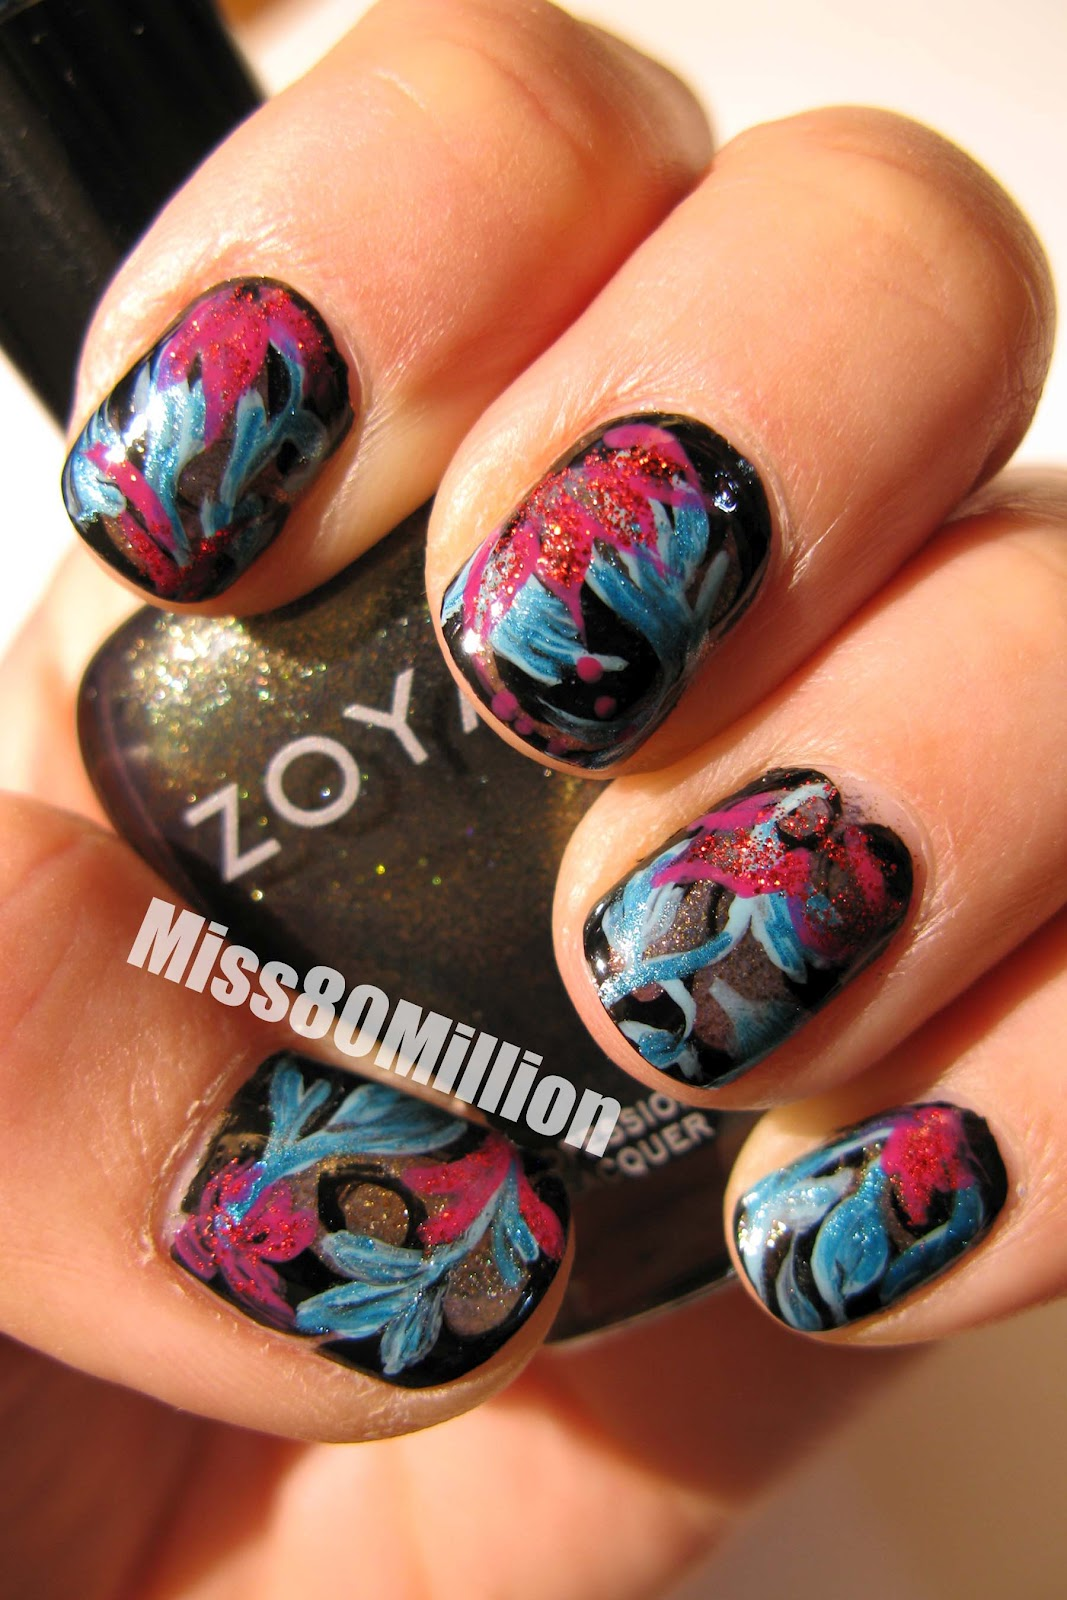 Miss80million Nail Design Inspired By Katy Perrys Dress From The